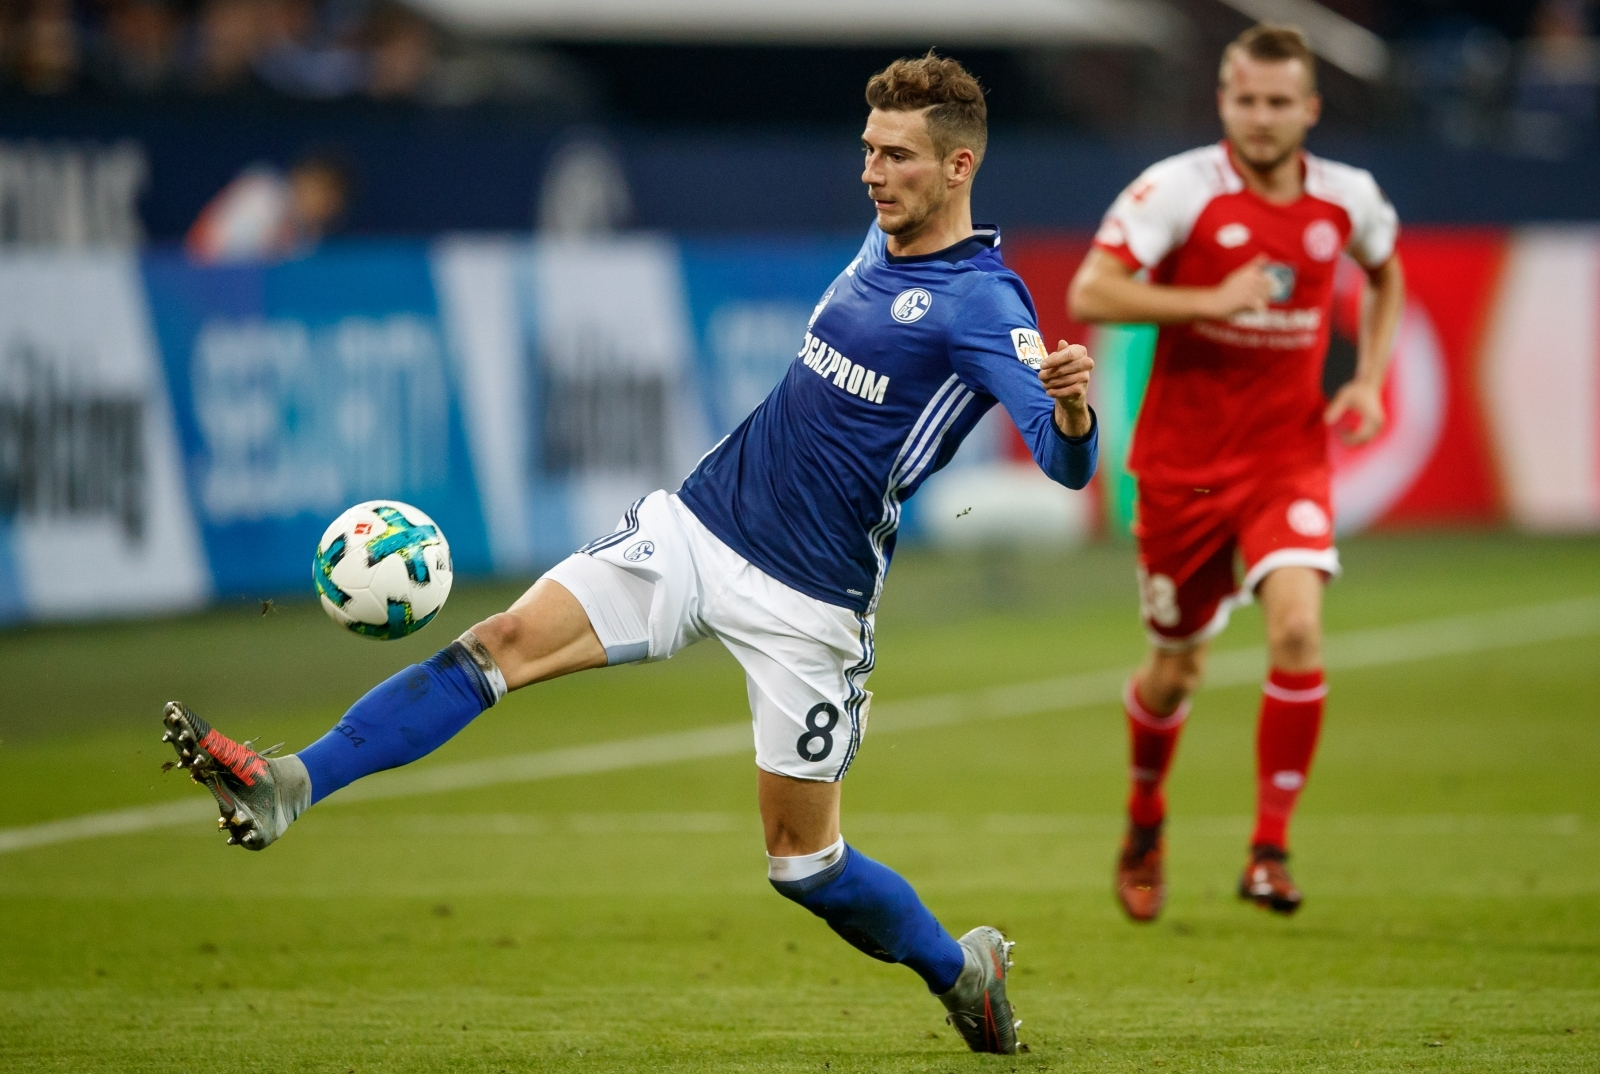 Christian Heidel: 'Schalke 04 have reached limit with Leon Goretzka'